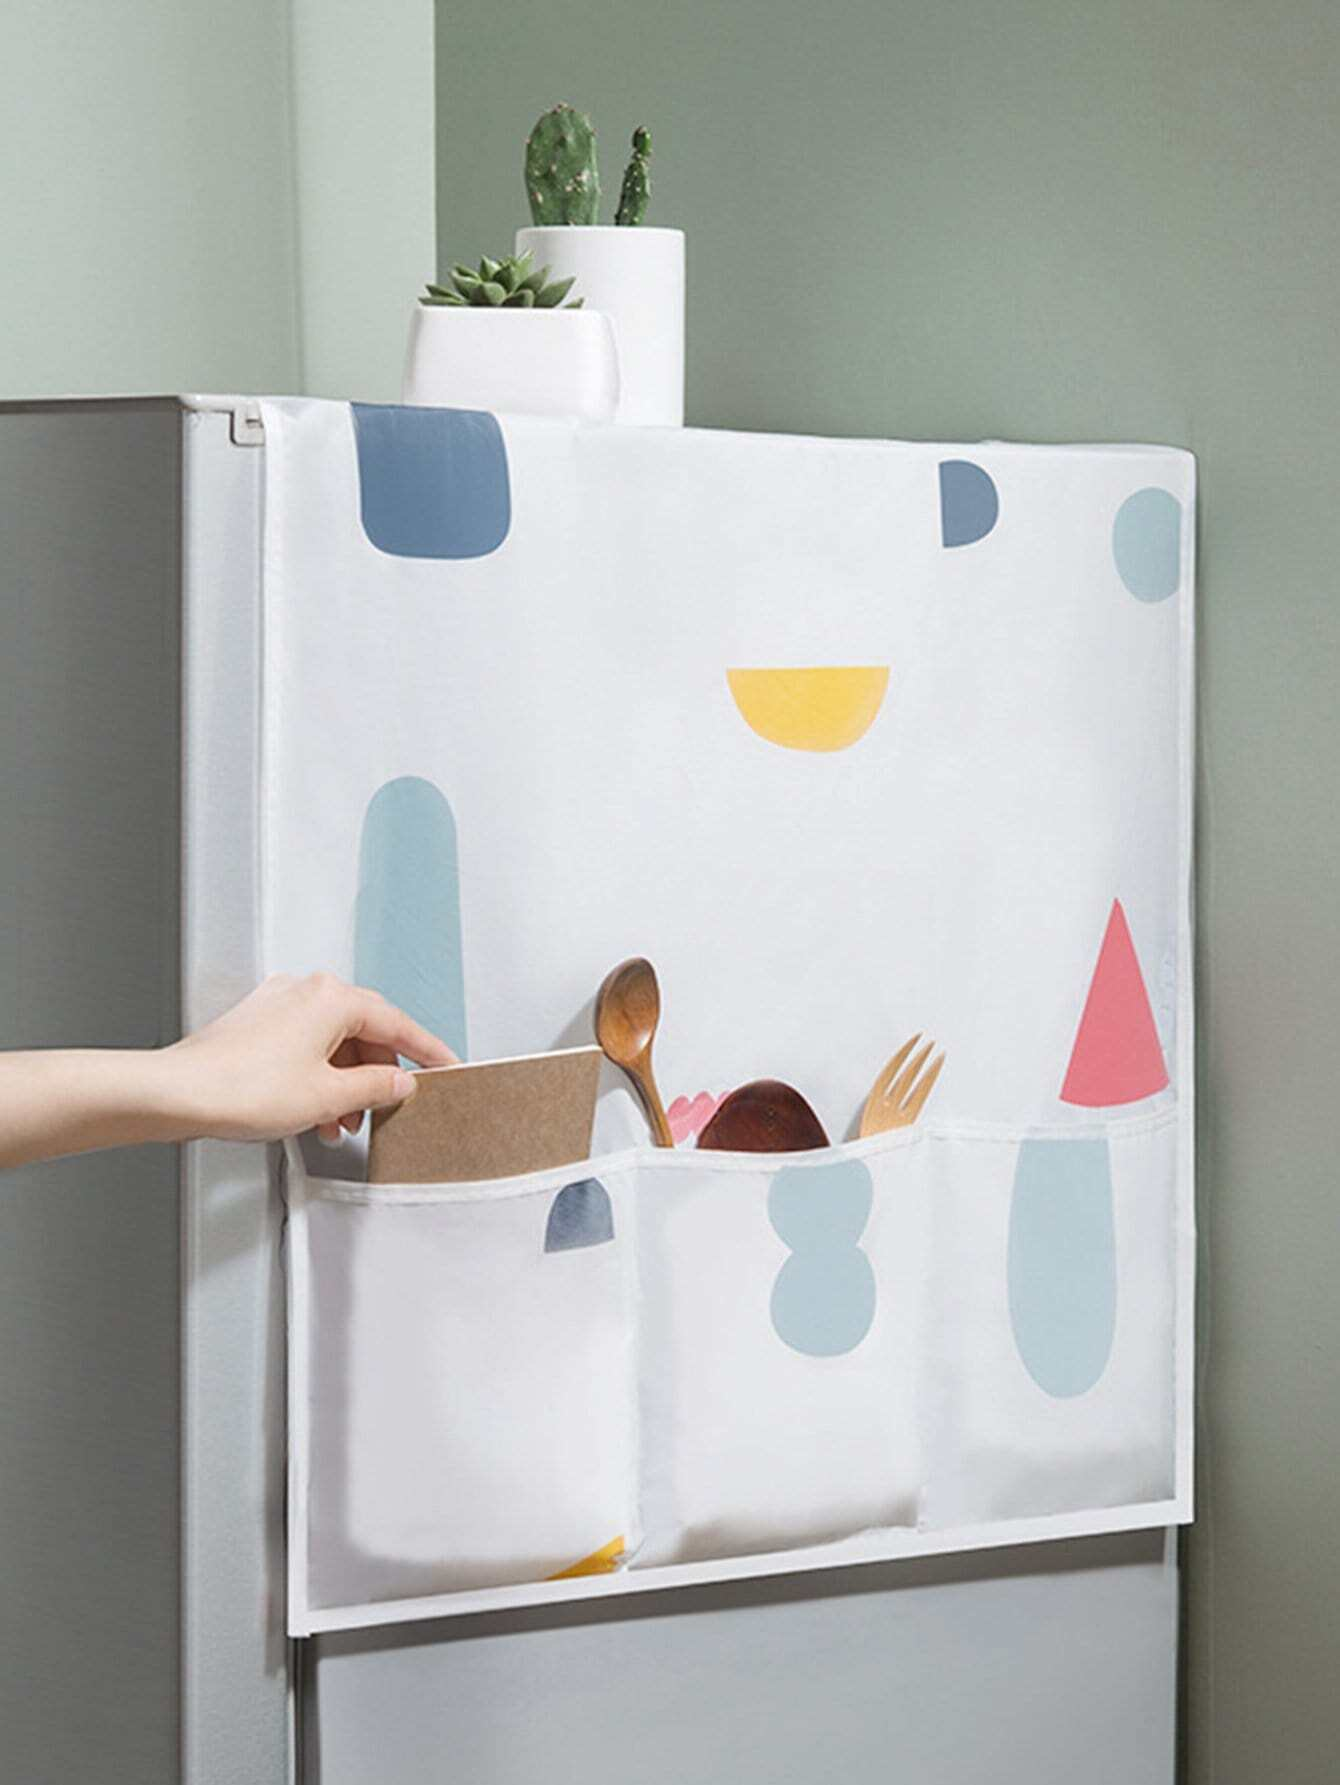 Geometric Pattern Refrigerator Dust Cover star print refrigerator dust cover